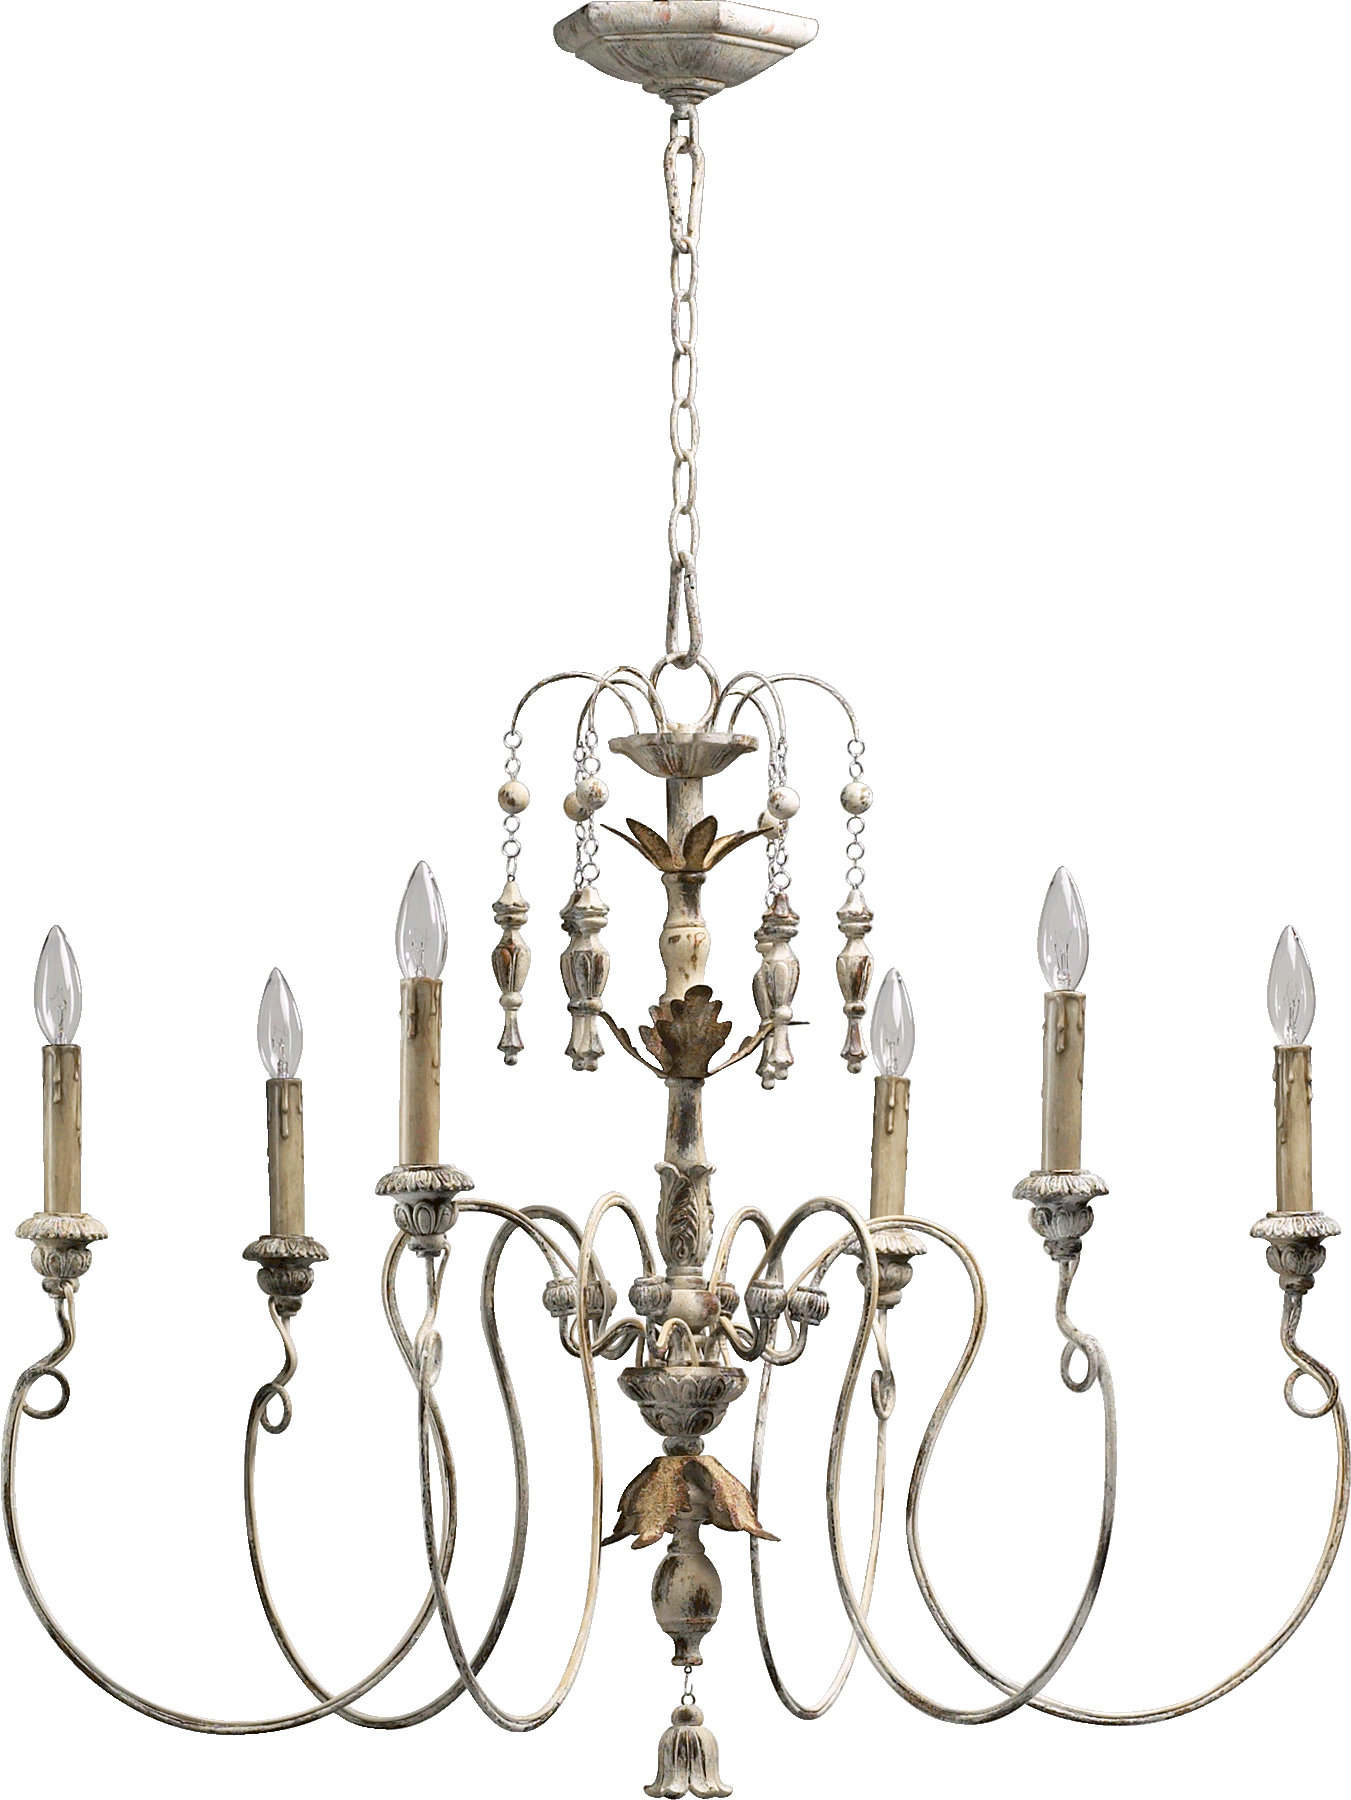 Paladino 6-Light Chandelier within Watford 6-Light Candle Style Chandeliers (Image 17 of 30)